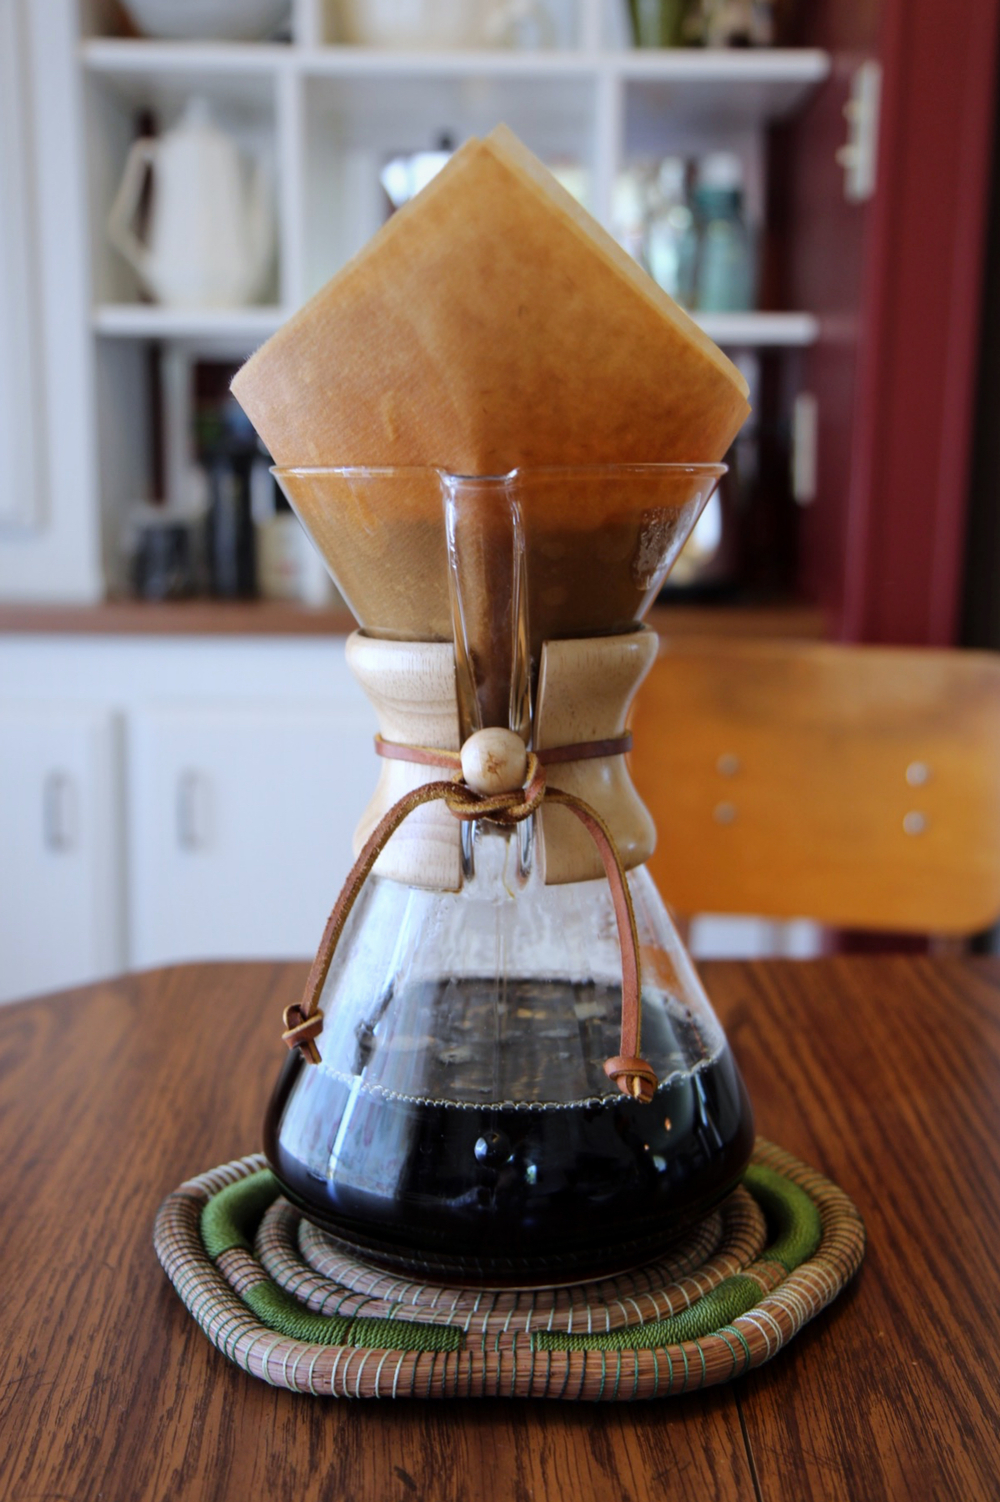 Our 50 oz. Chemex, in all its beauty